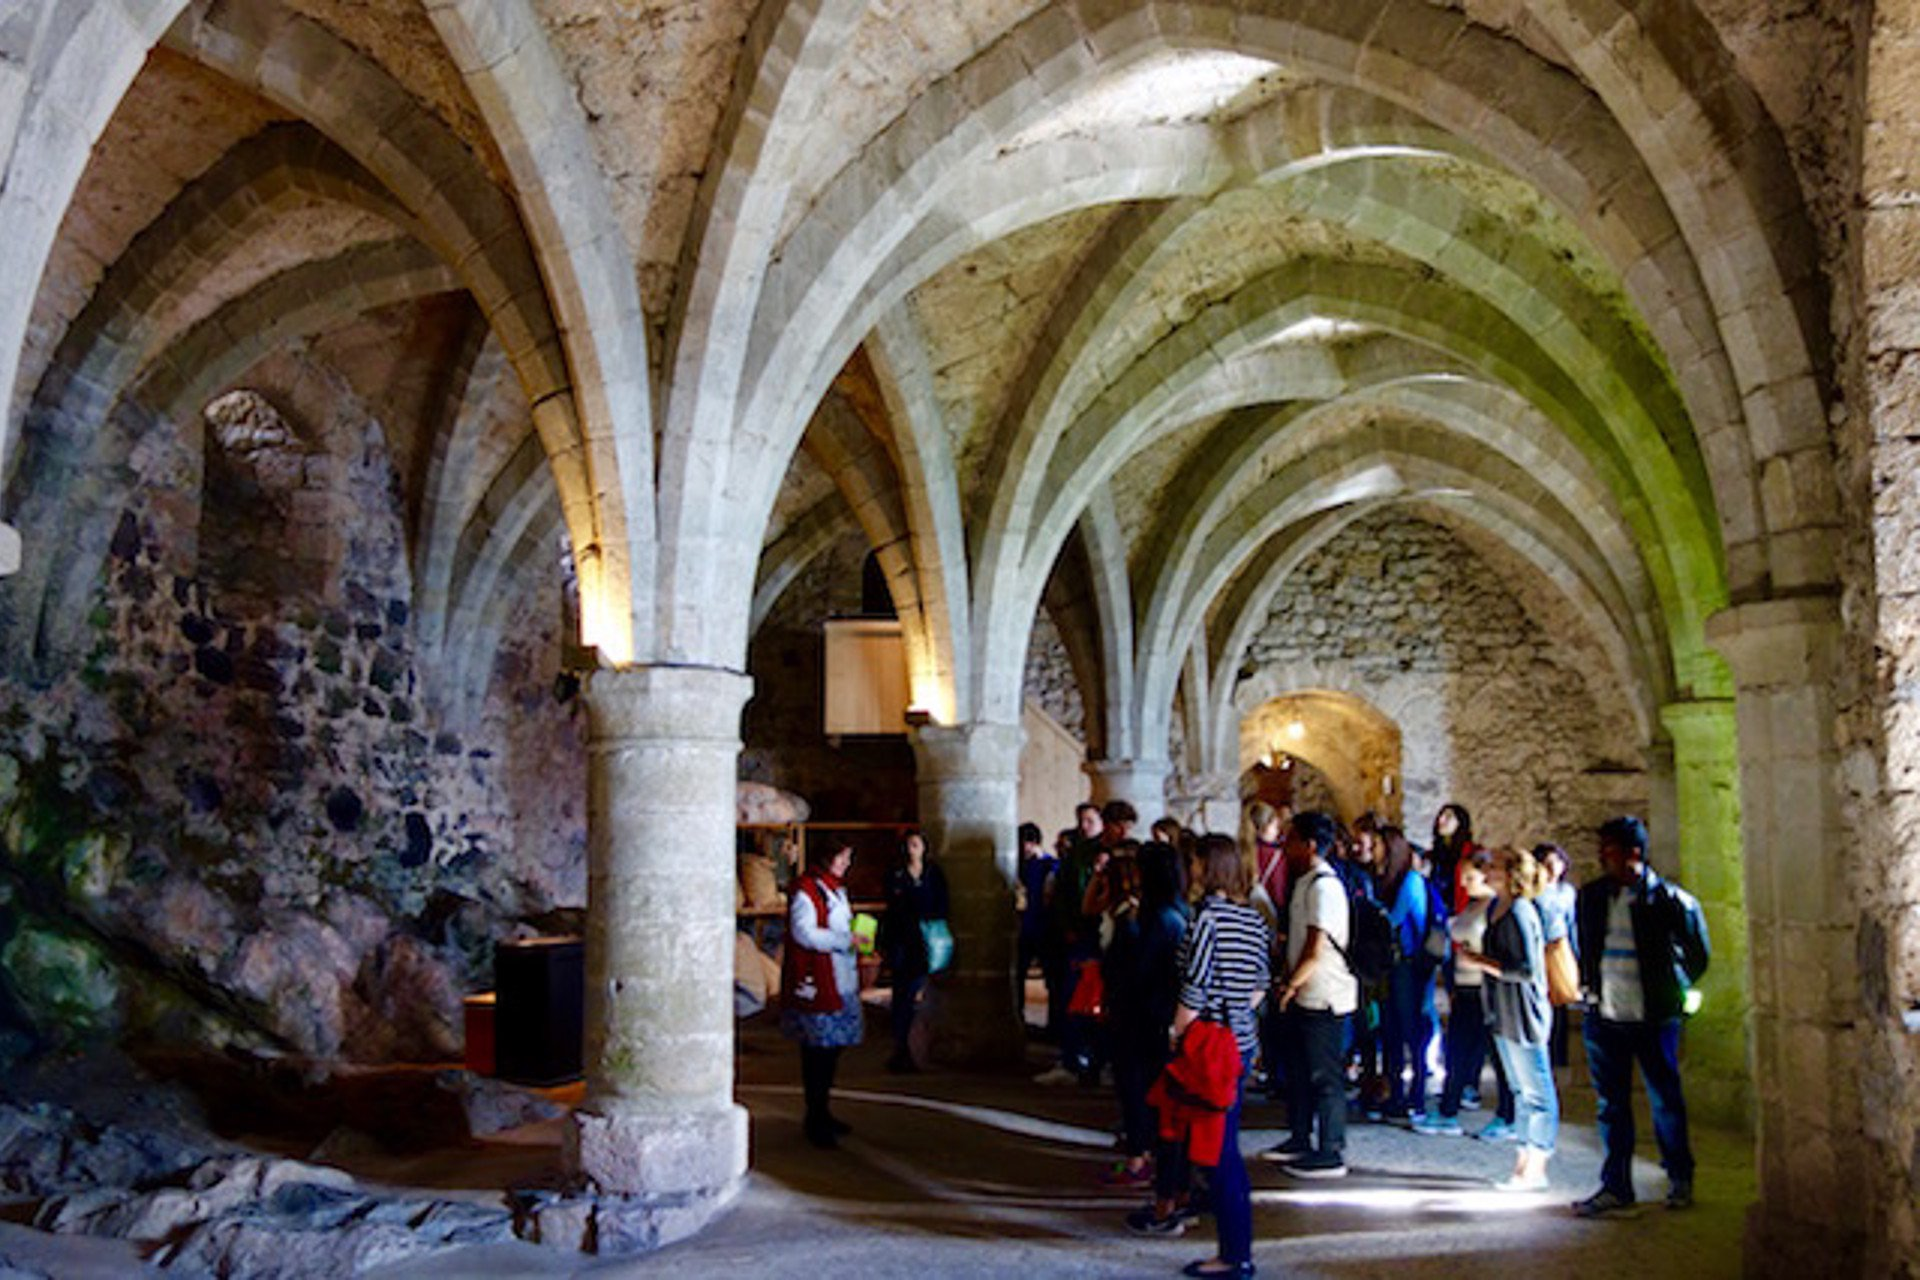 The stone vaults in the heart of the medieval fortress of Château deChillon